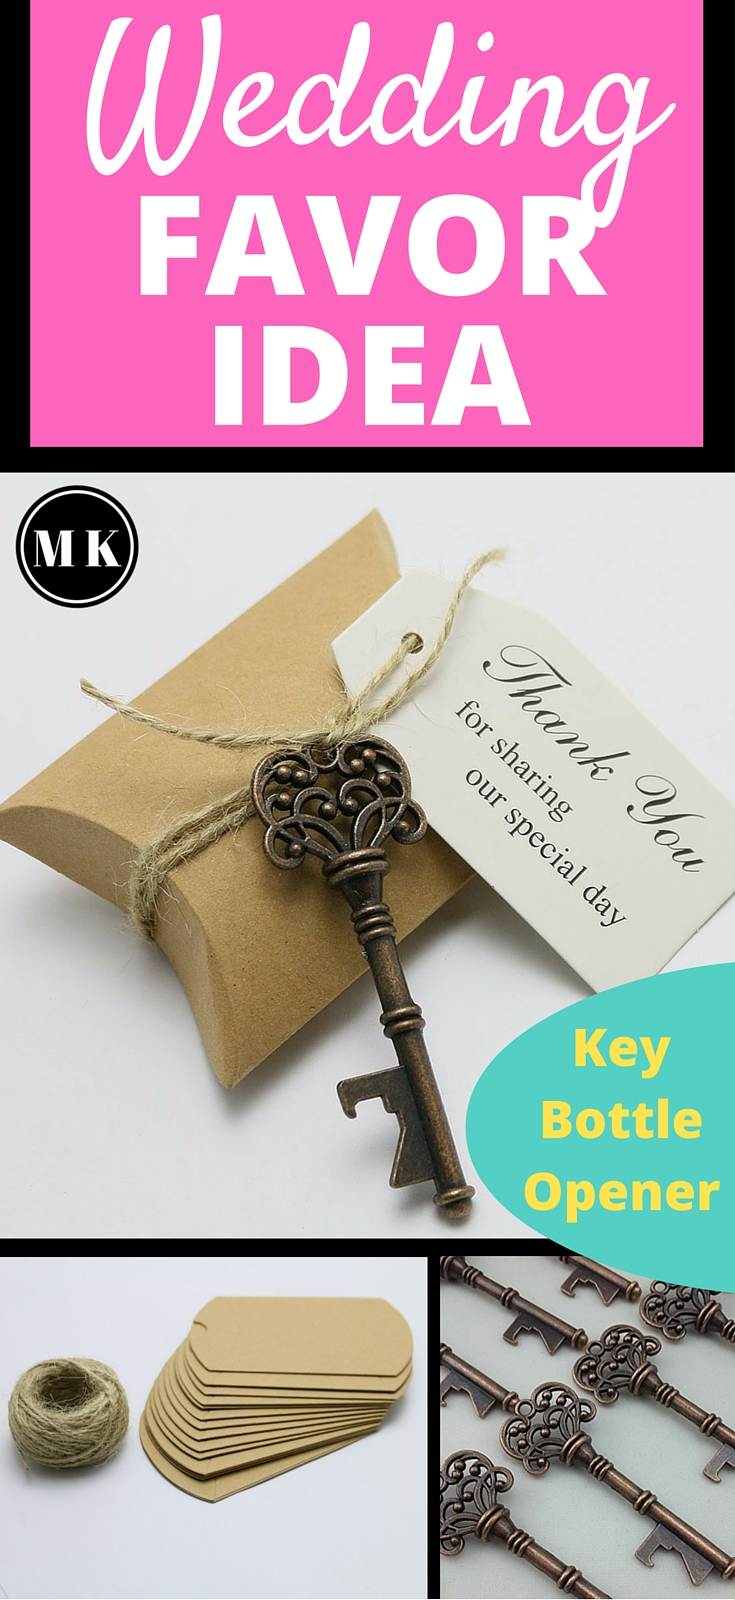 "Antique Skeleton Key Bottle Opener and Candy Box Wedding Favor Kit - What I love about this unique ""thank you"" gift for your guests is that they not only get the sweets that you put inside the favor box that they can enjoy right away, but they also get a useful key bottle opener to keep forever and remember your wedding by! Plus, they look awesome! These arrive as a kit that are easy to put together, but if you want a little more DIY, I have some great ideas on how you can personalize them!"